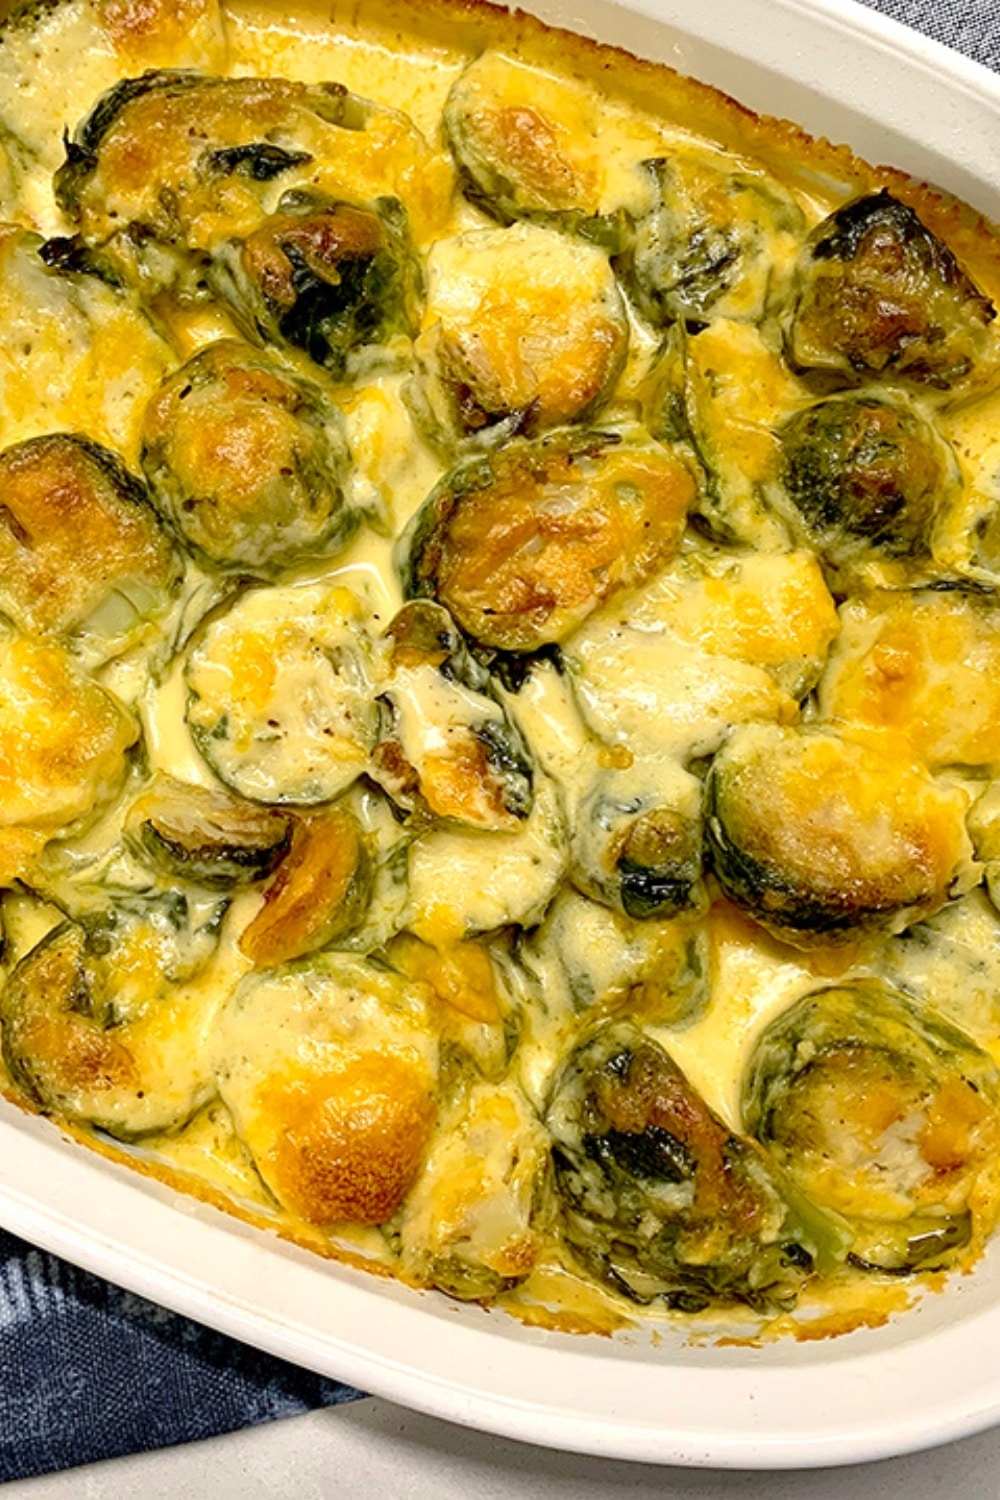 Dreamy Creamy Baked Cheesy Brussels Sprouts